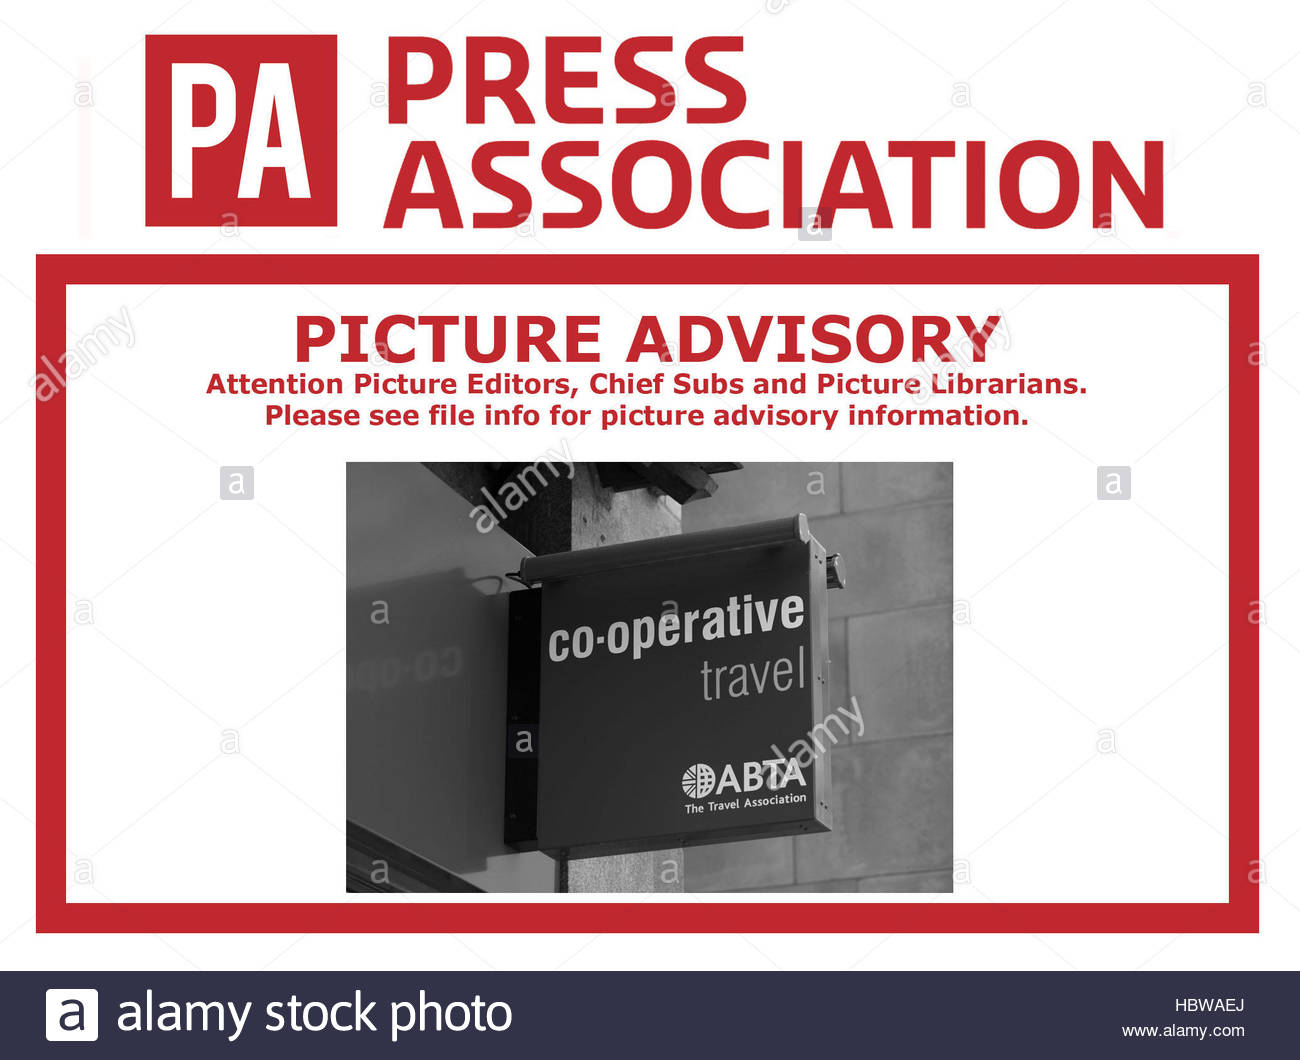 PLEASE BE ADVISED THAT THIS IMAGE TRANSMITTED ON THE PA WIRE EARLIER TODAY SLUGGED CITY THOMASCOOK SHOWS A MIDCOUNTIES - Stock Image